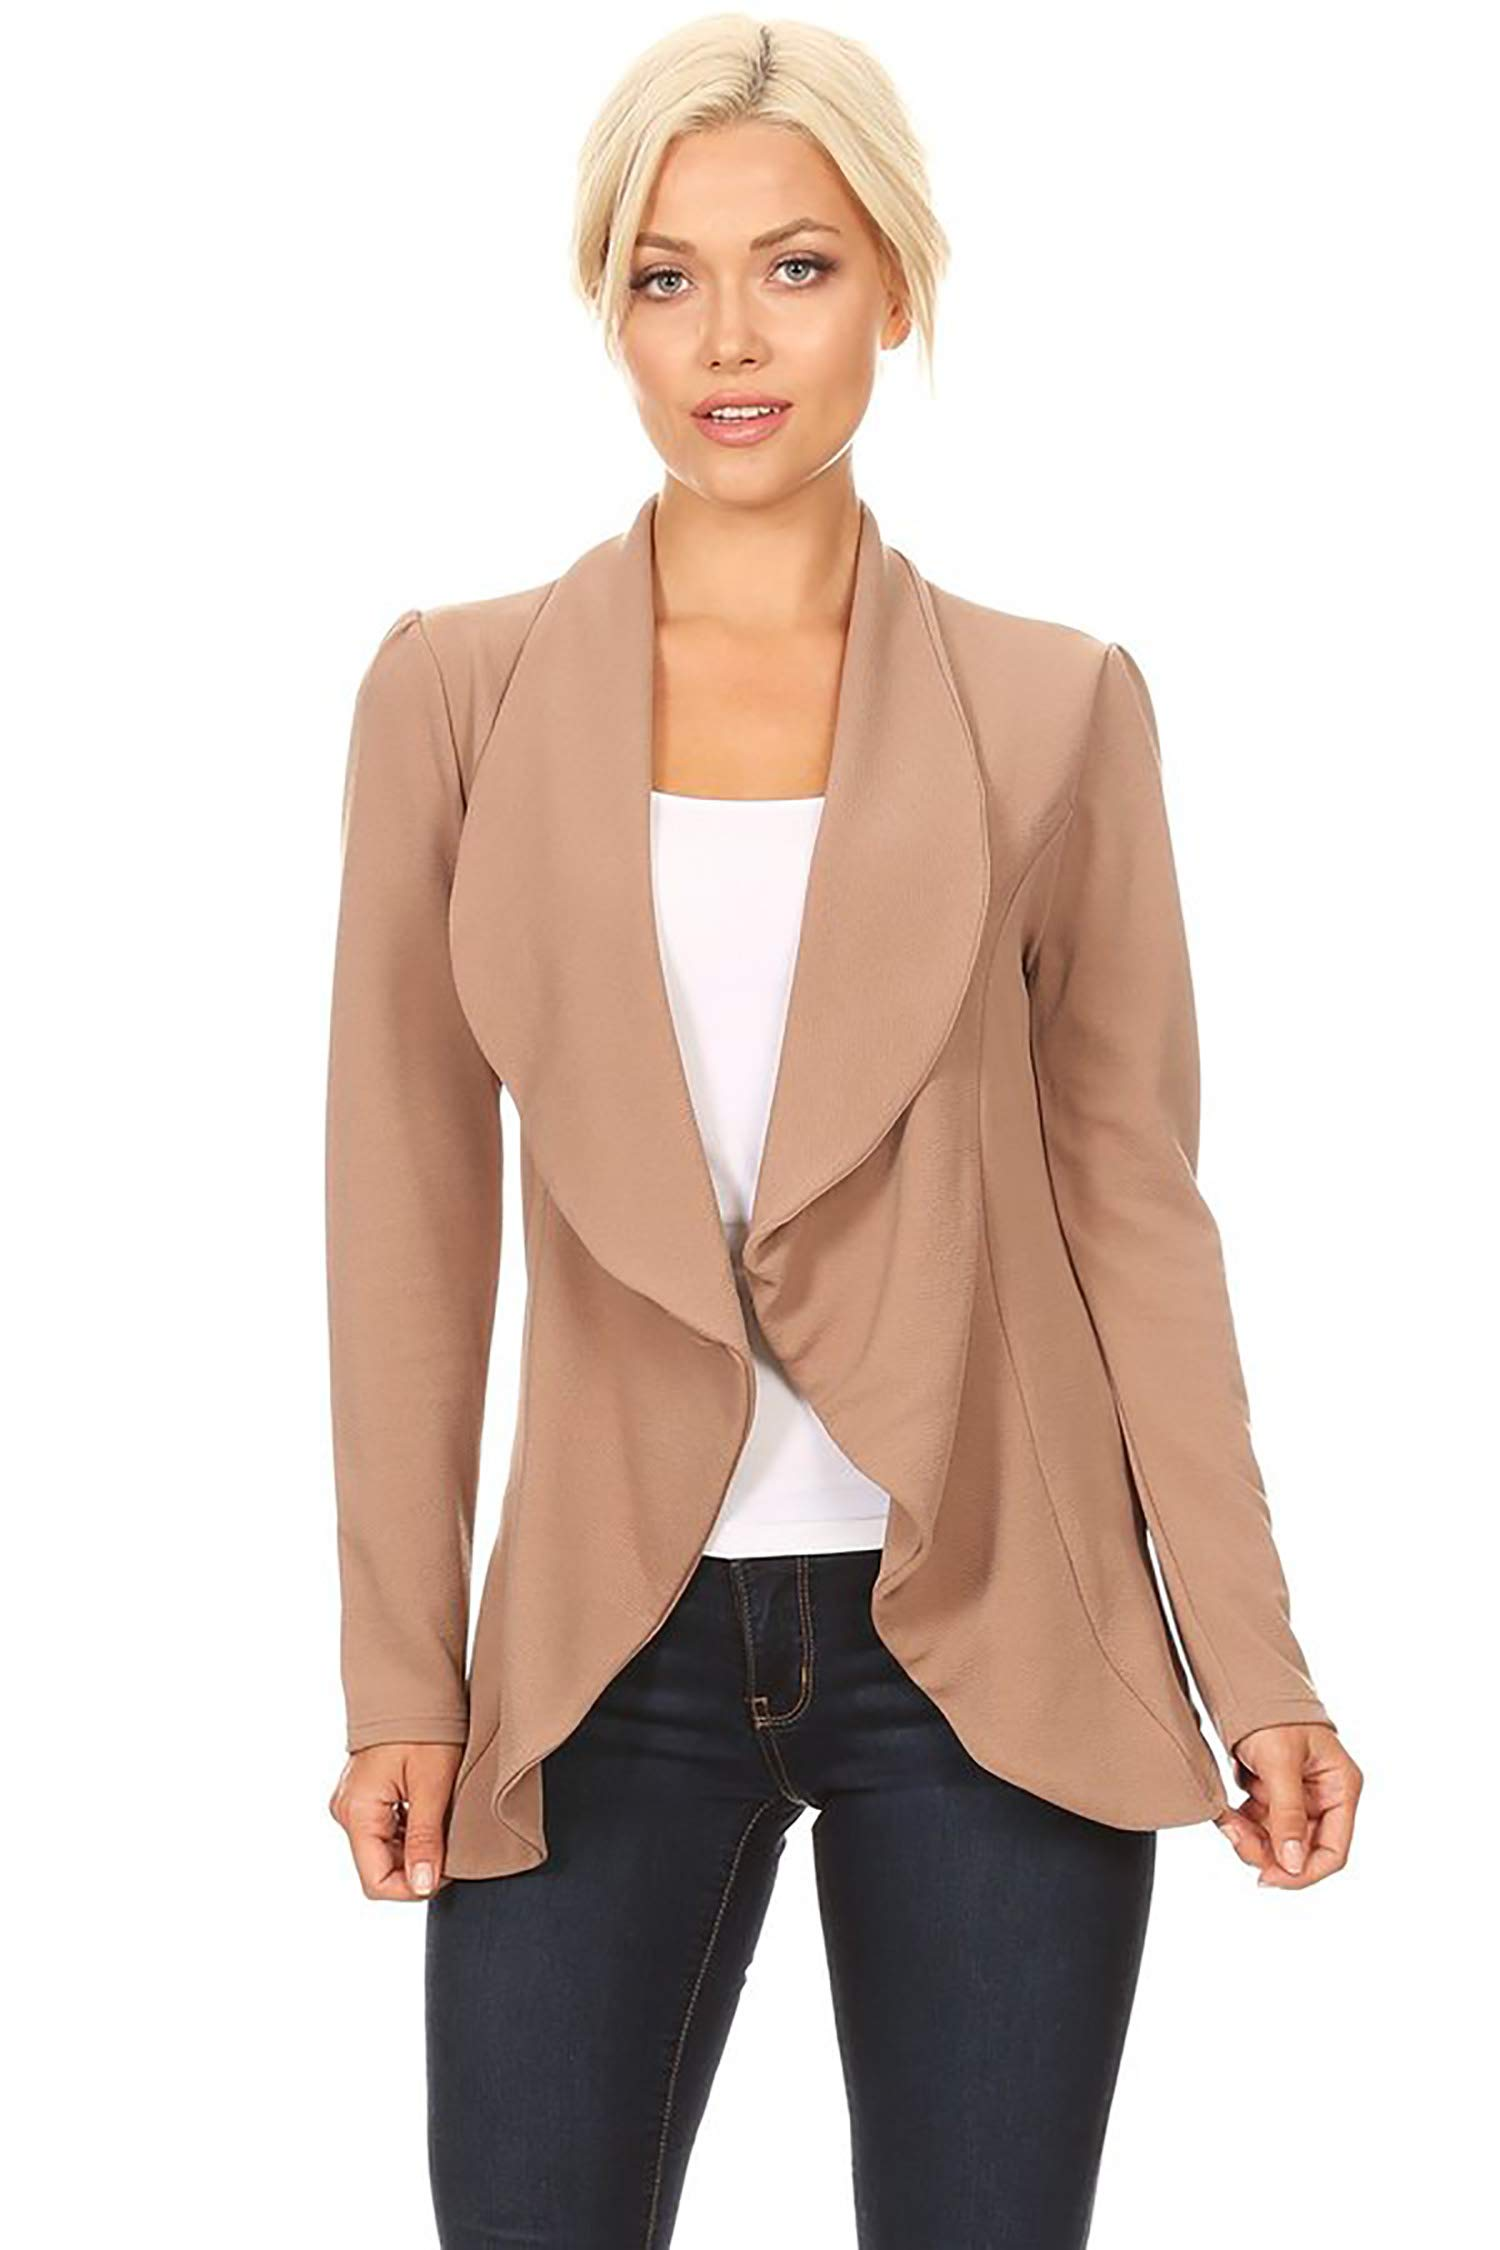 Women's Stretch Long Sleeves Open Front Blazer/Made in USA (S-3XL) Mocha M